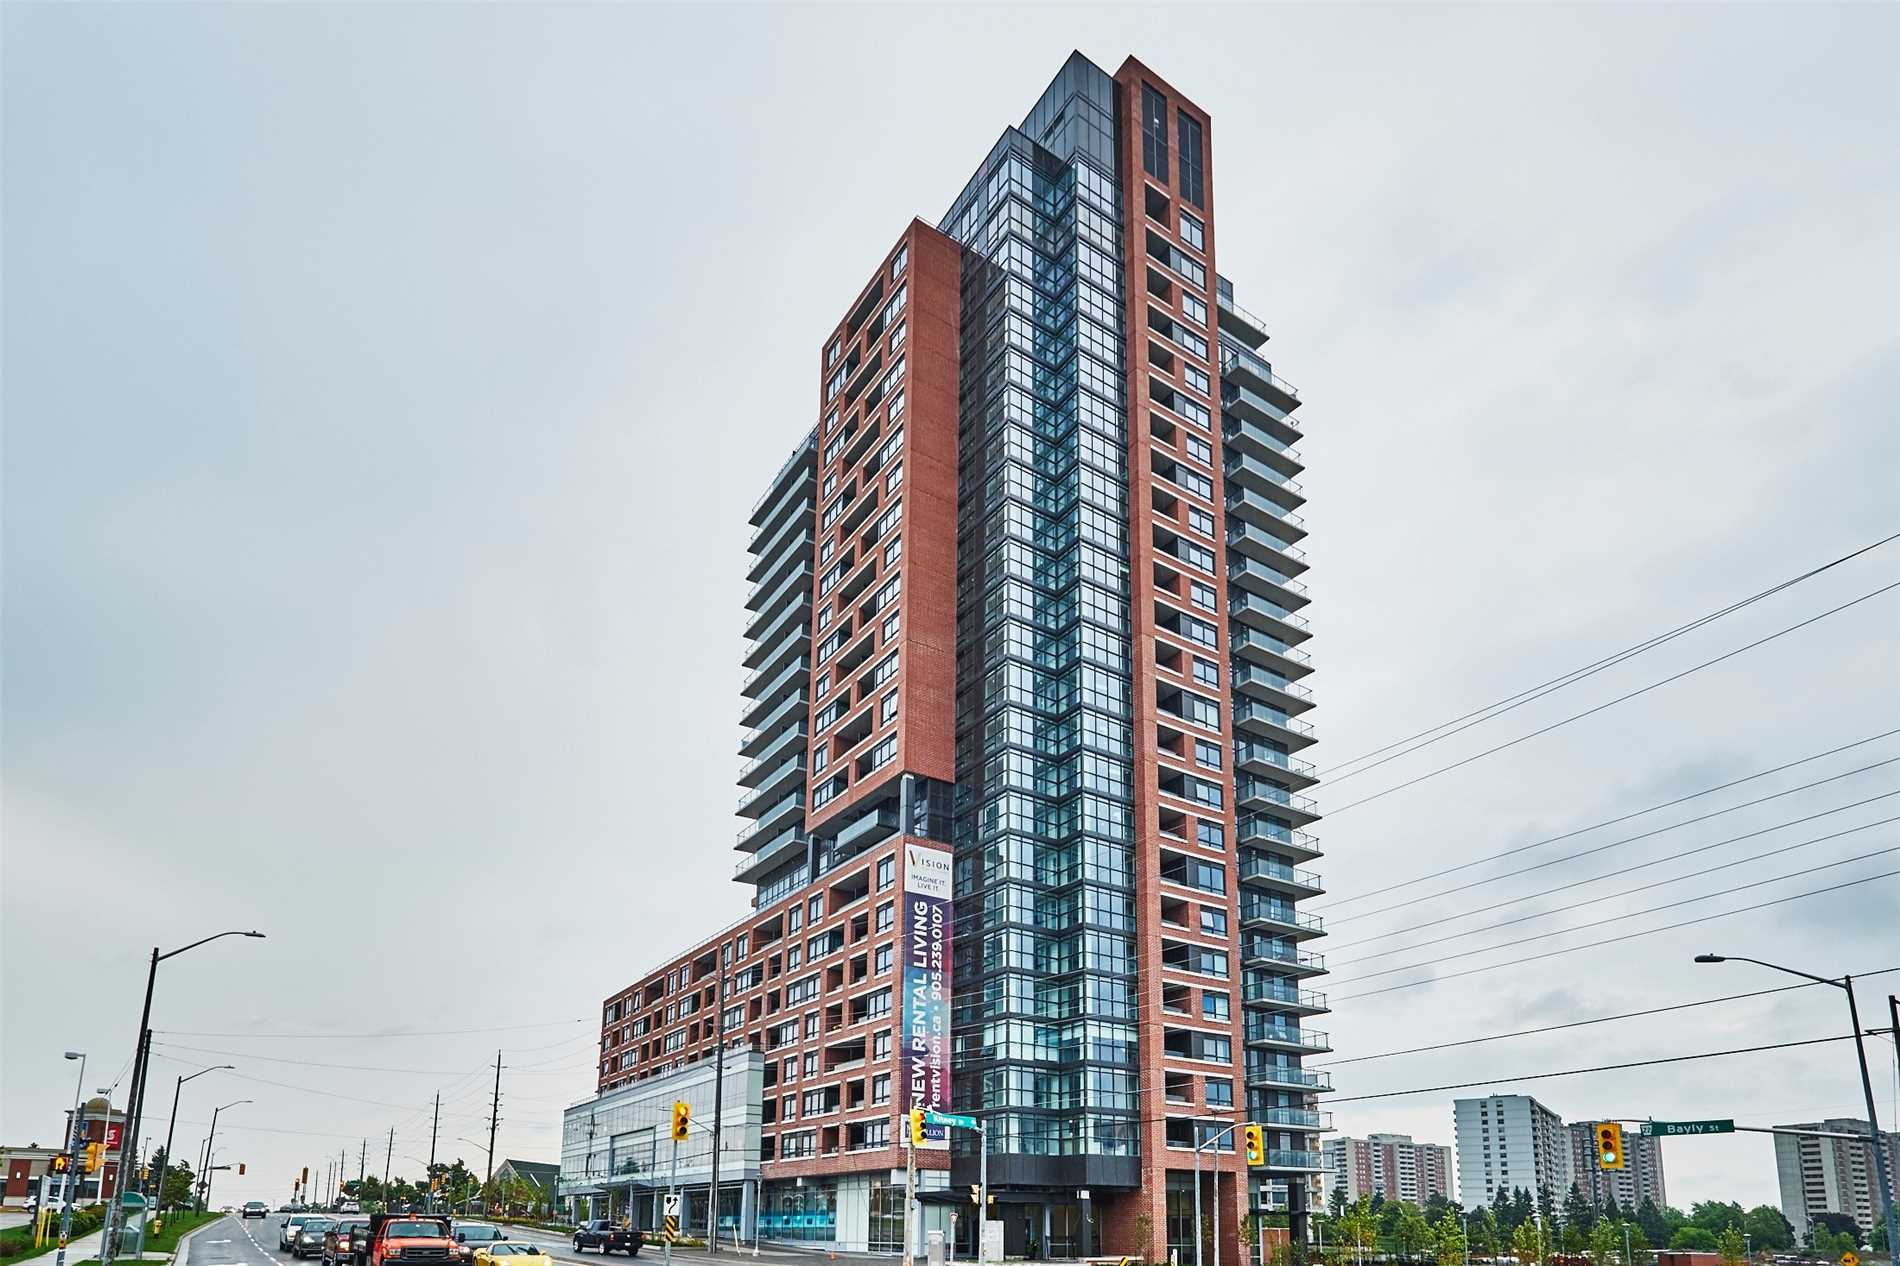 Brand New Contemporary Style Building. This Fabulous Corner Unit Suite Offers Approx 928 Sq Ft Of Living Space And Features An Open Concept Floor Plan With Floor To Ceiling Windows Throughout Providing Plenty Of Natural Light.  Customized Flooring And Modern Kitchen. Balcony With West Exposure. Minutes From The Go Station And Hwy 401. Just Move In And Enjoy!